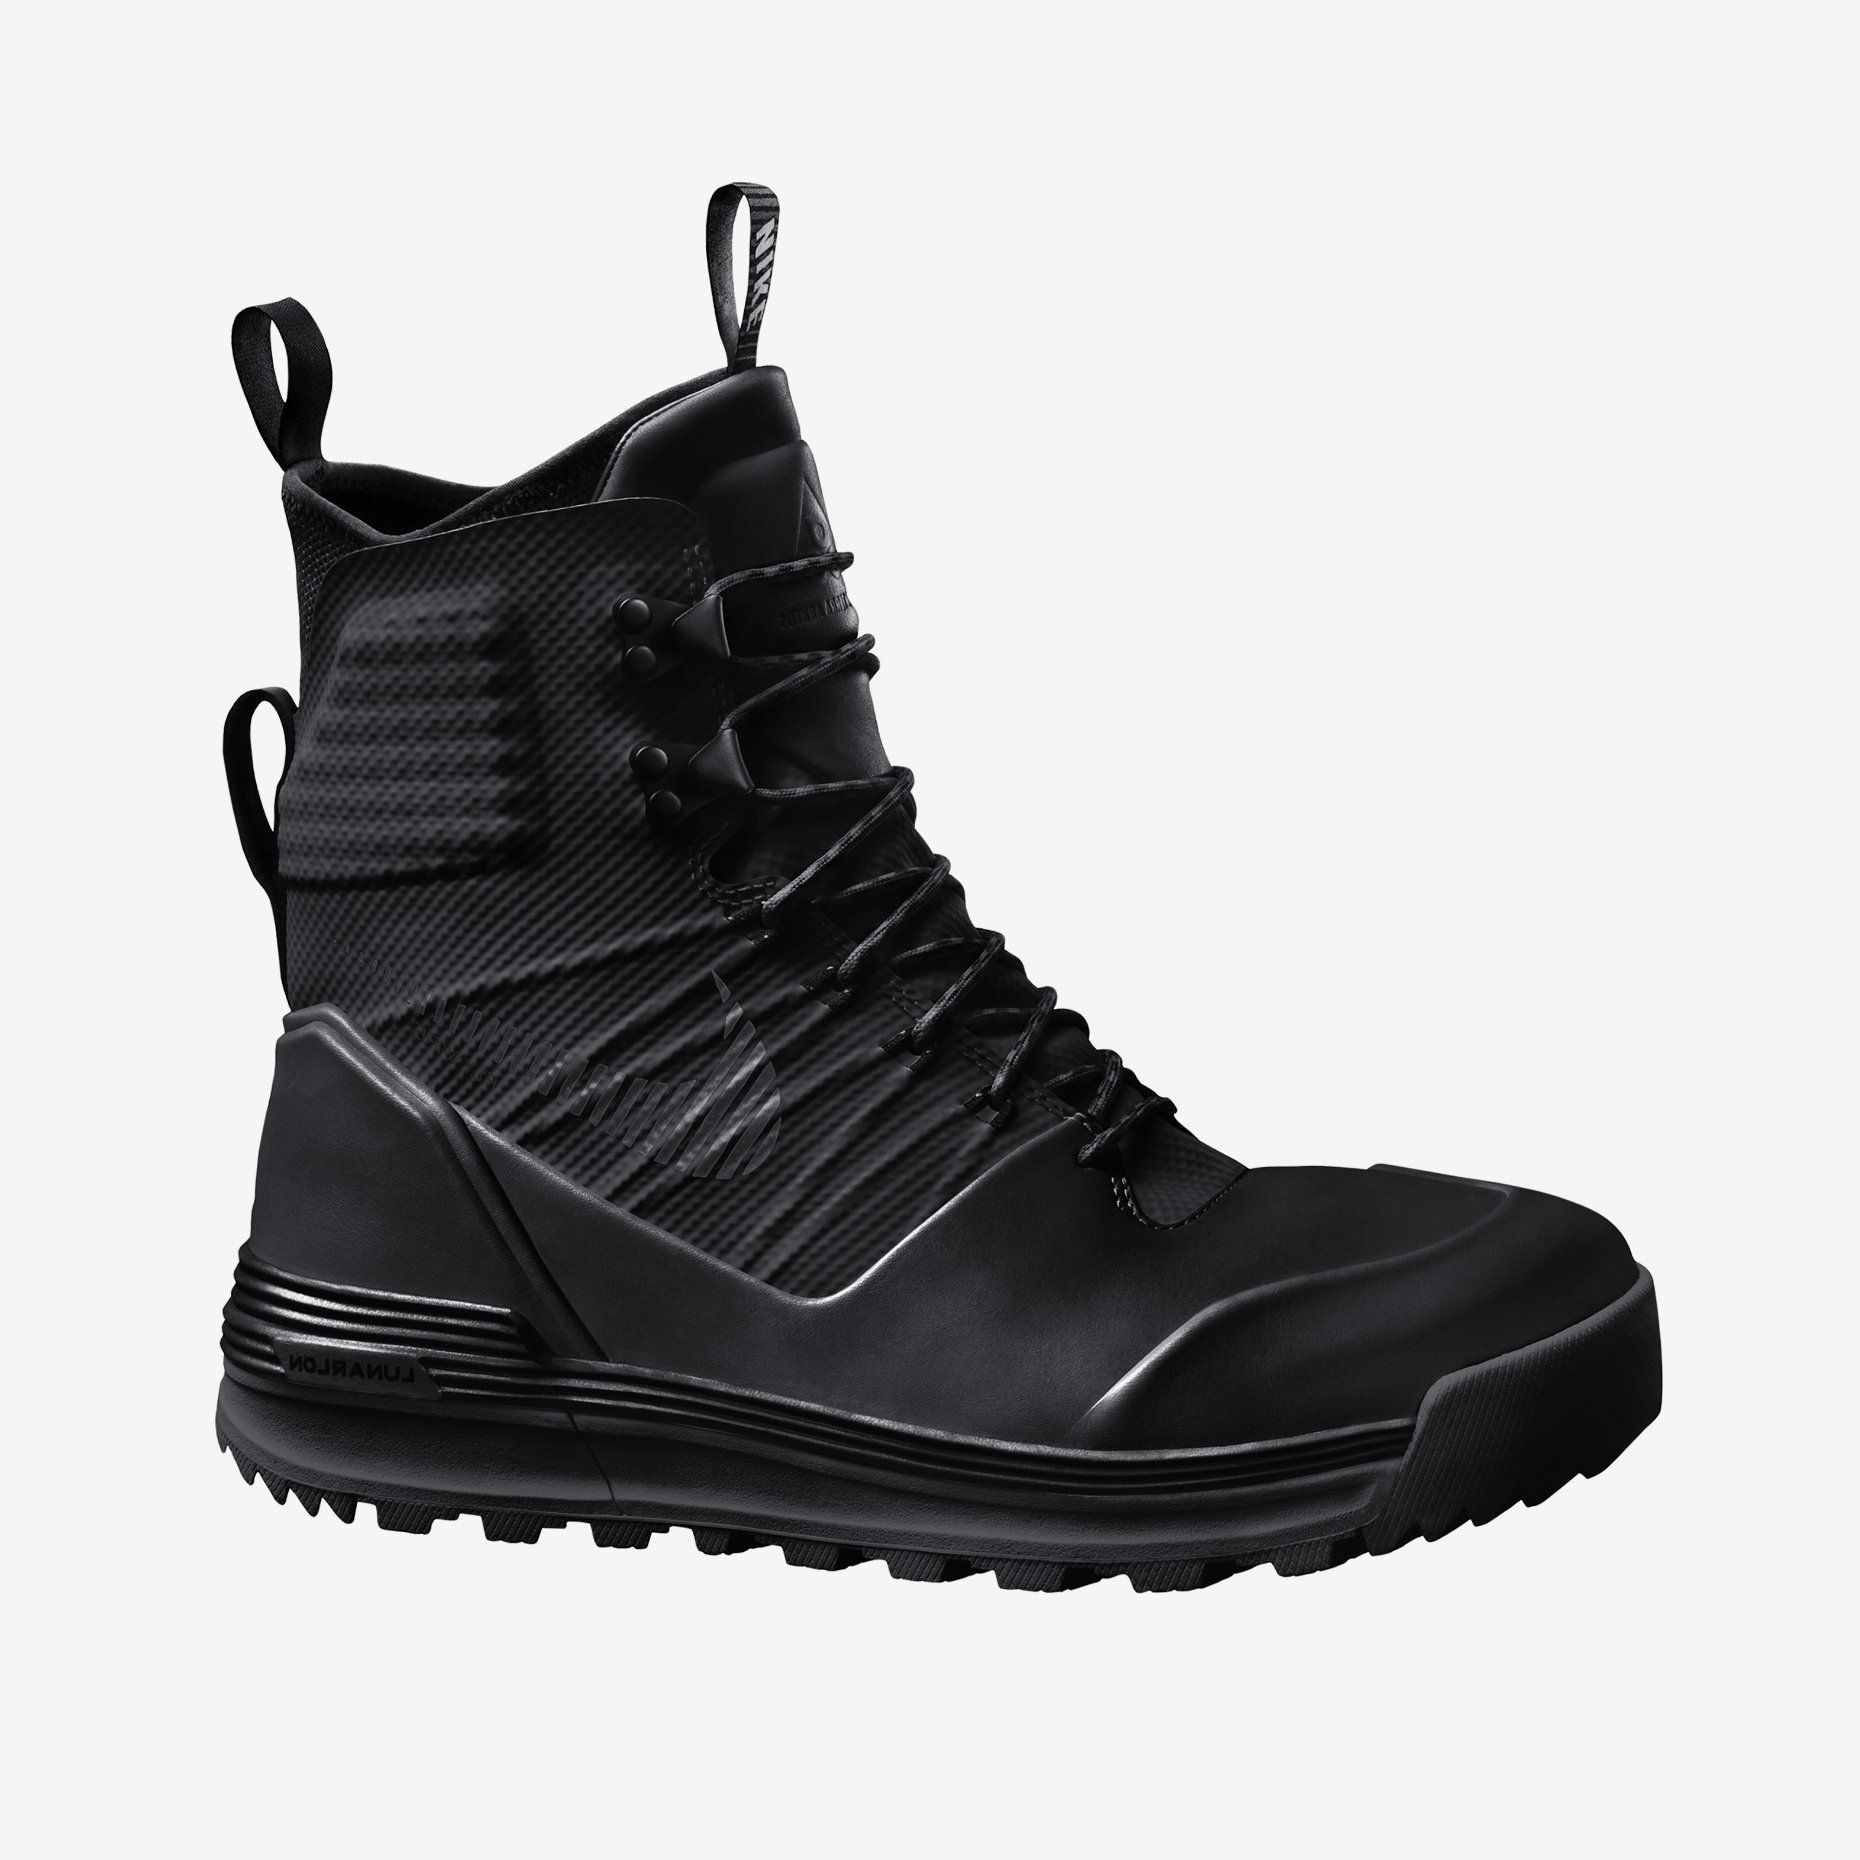 651d87aac34 where can i buy details about nike acg foamposite boot eggplant ...